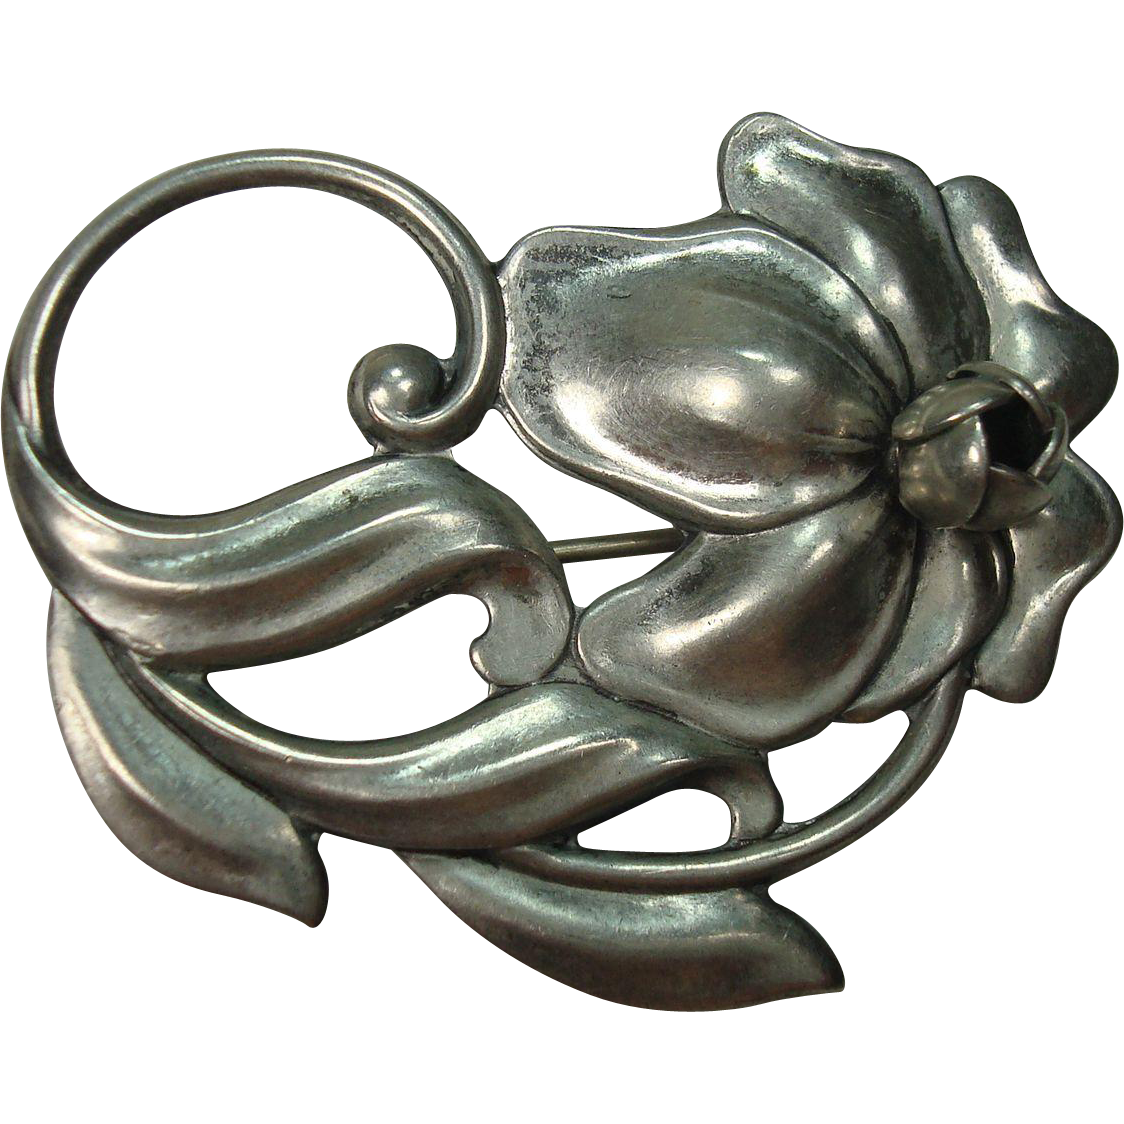 Beau Sterling Lily Floral and Leaf Brooch or Pin